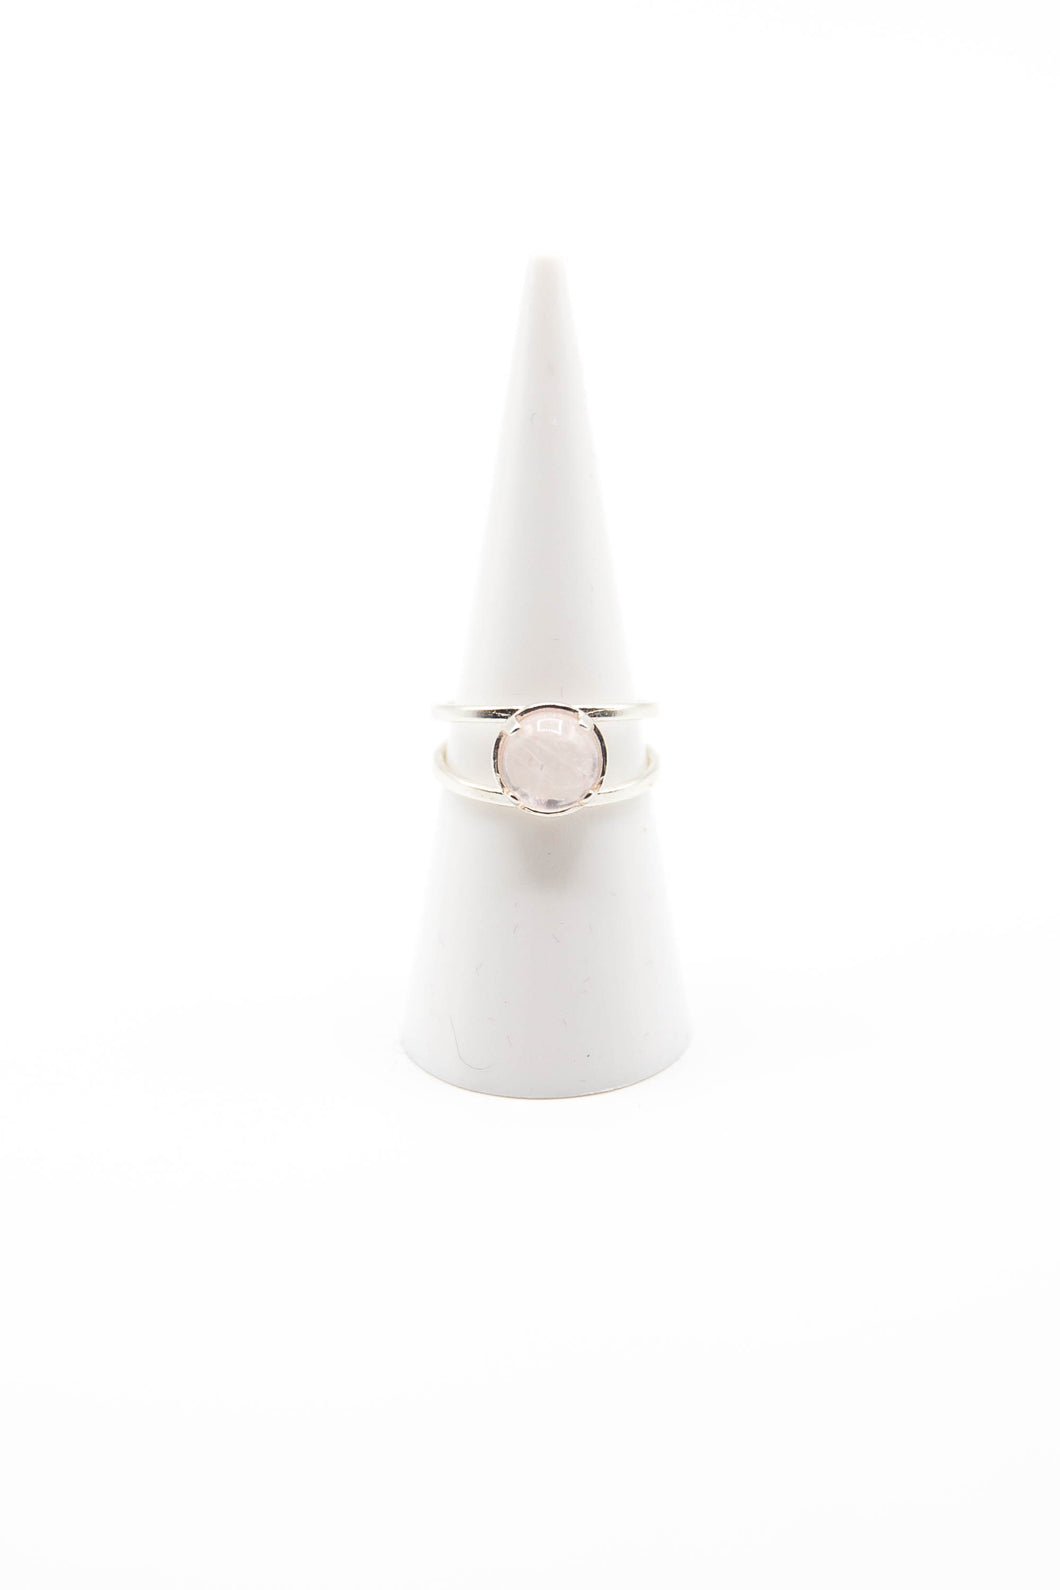 Striped Rose Quartz (Available in Silver, Gold or Rose Gold)